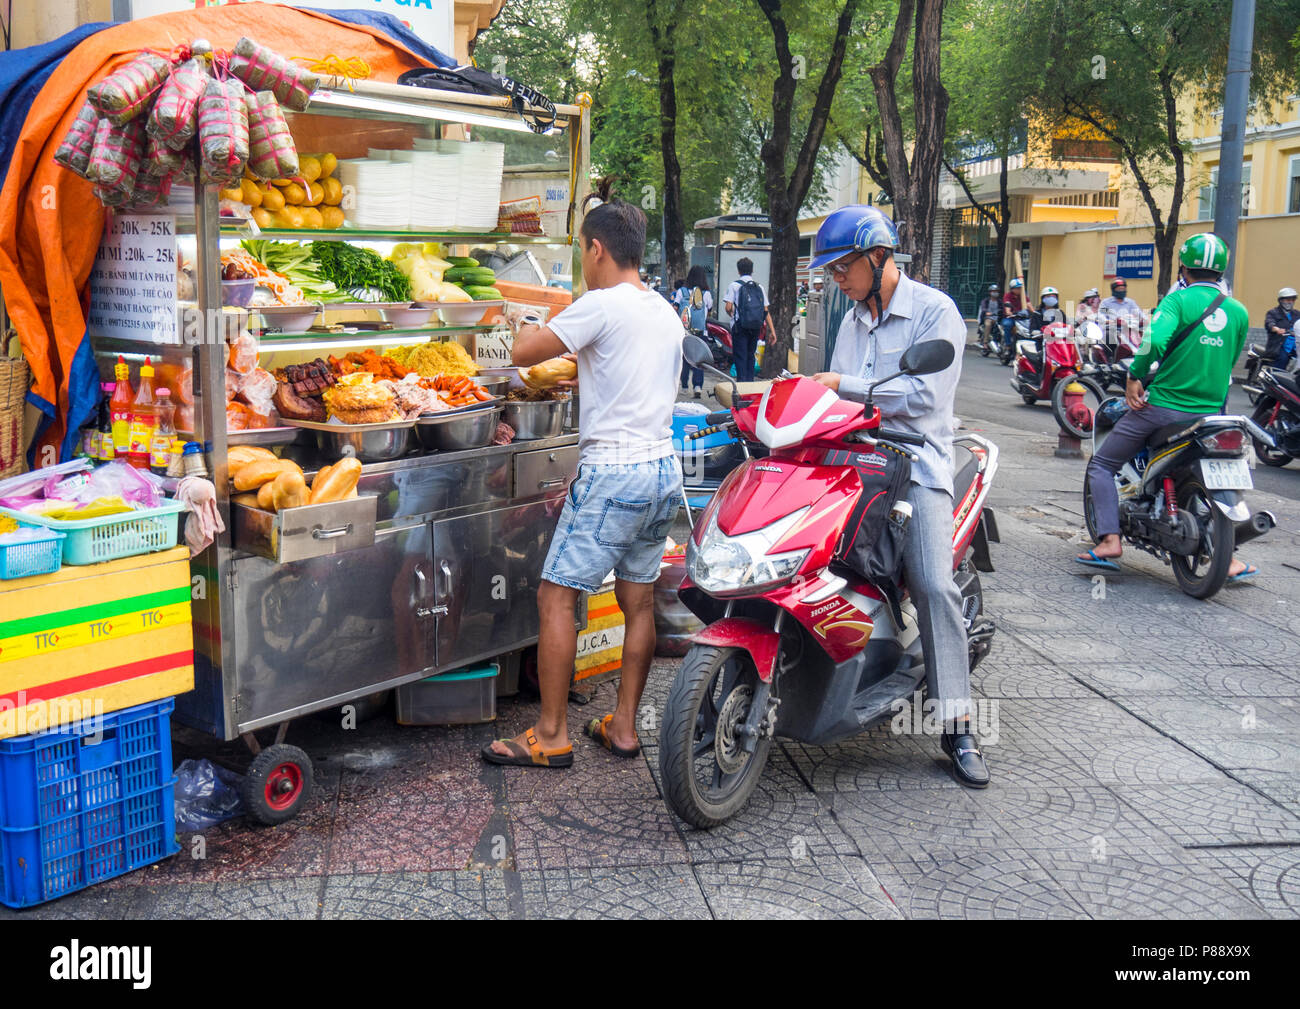 A Vietnamese man on a motorbike purchasing street food from a vendor selling food from a cart in Ho Chi Minh City Vietnam. Stock Photo